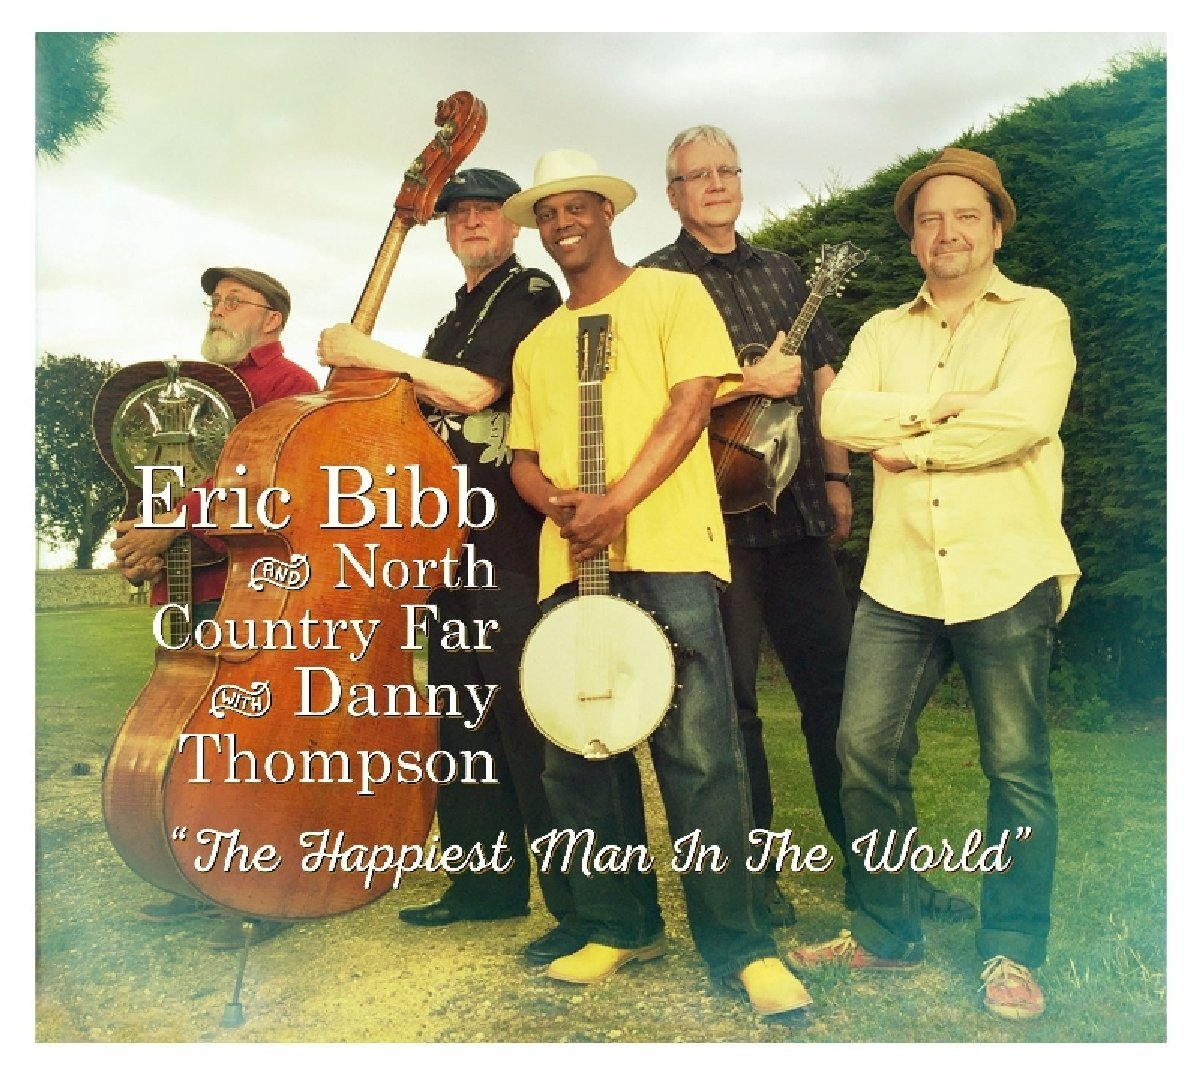 ERIC BIBB AND NORTH COUNTRY FAR – The happiest man in theworld